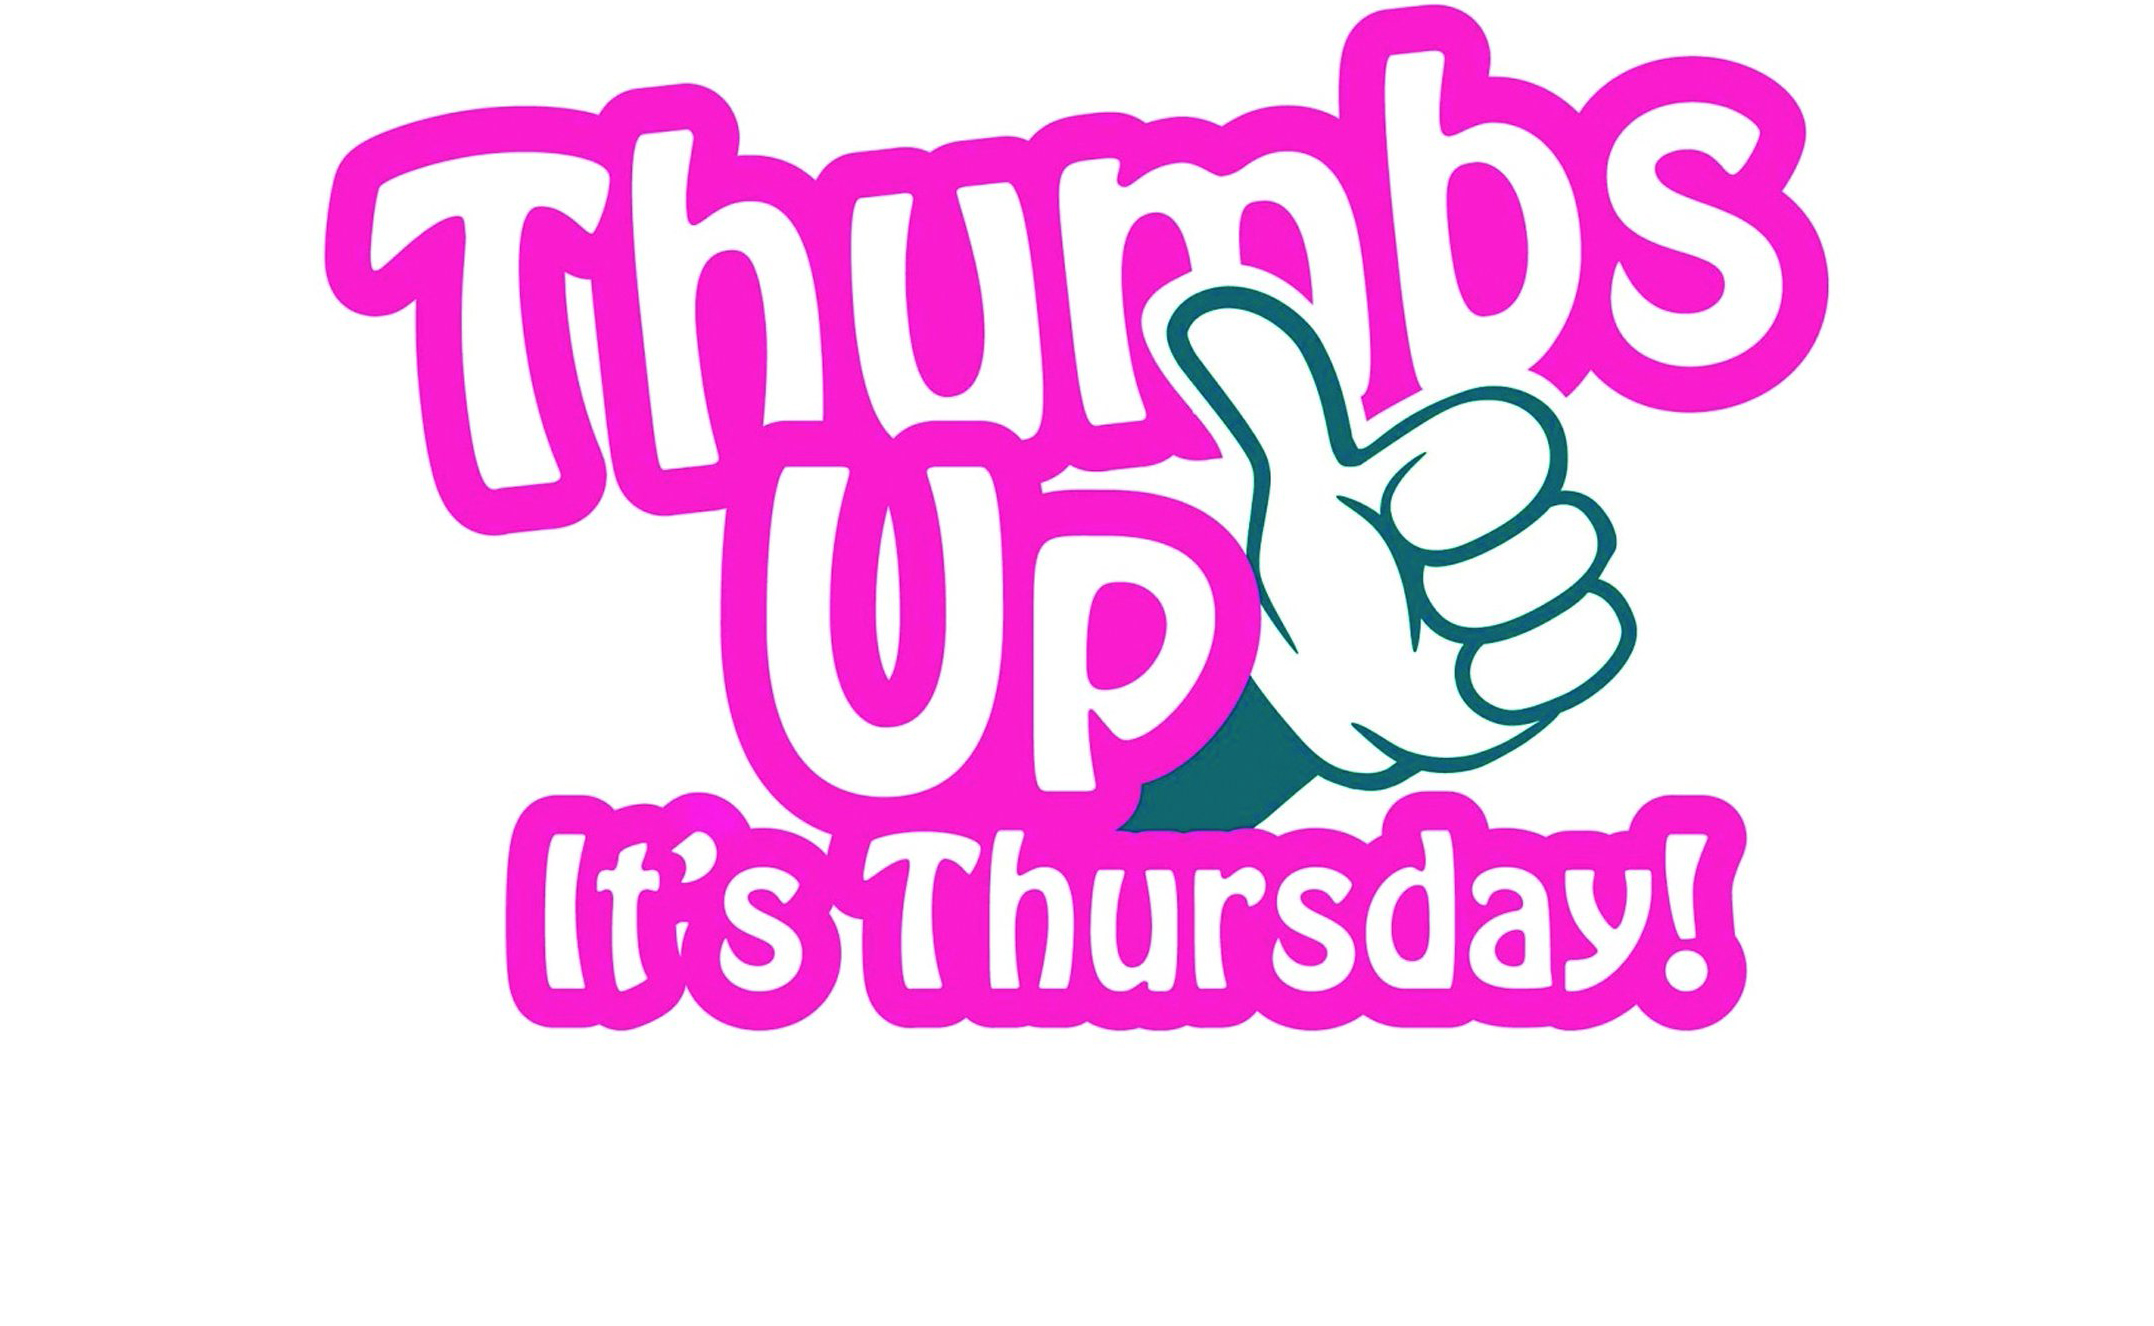 Thumbs Up It's Thursday! Activities for children and families